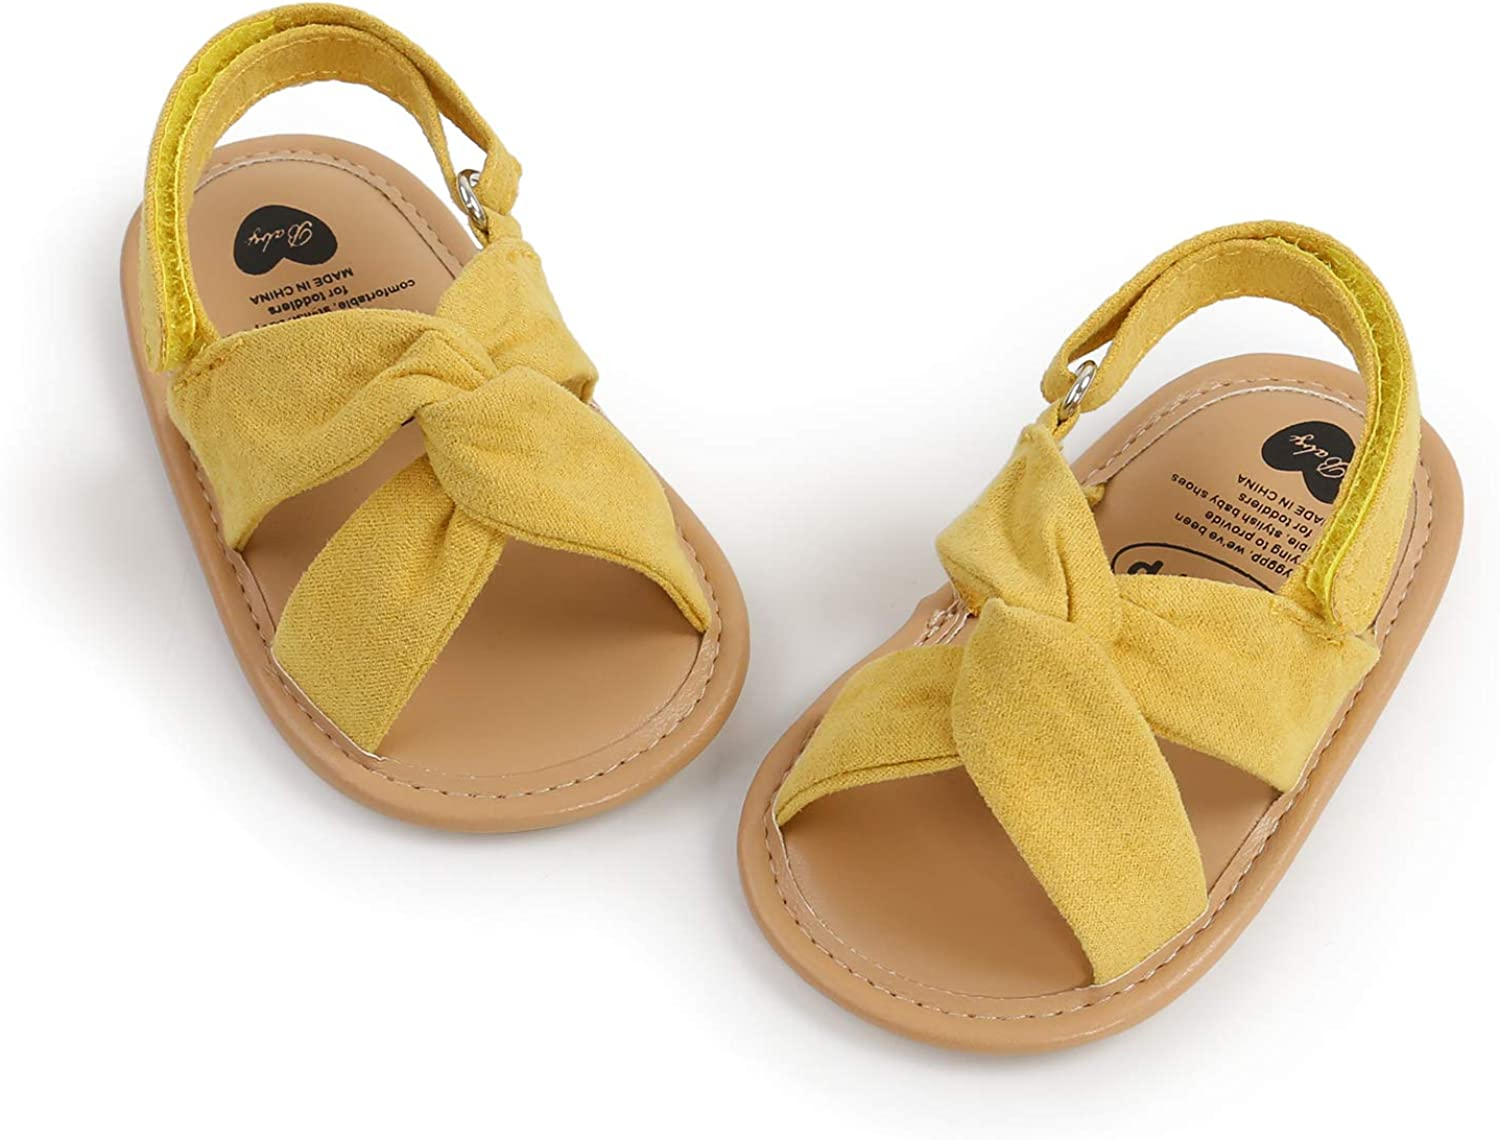 Baby Boys Popularity Girls Sandals Soft Dress Summer Limited price sale Infant Shoes Sole